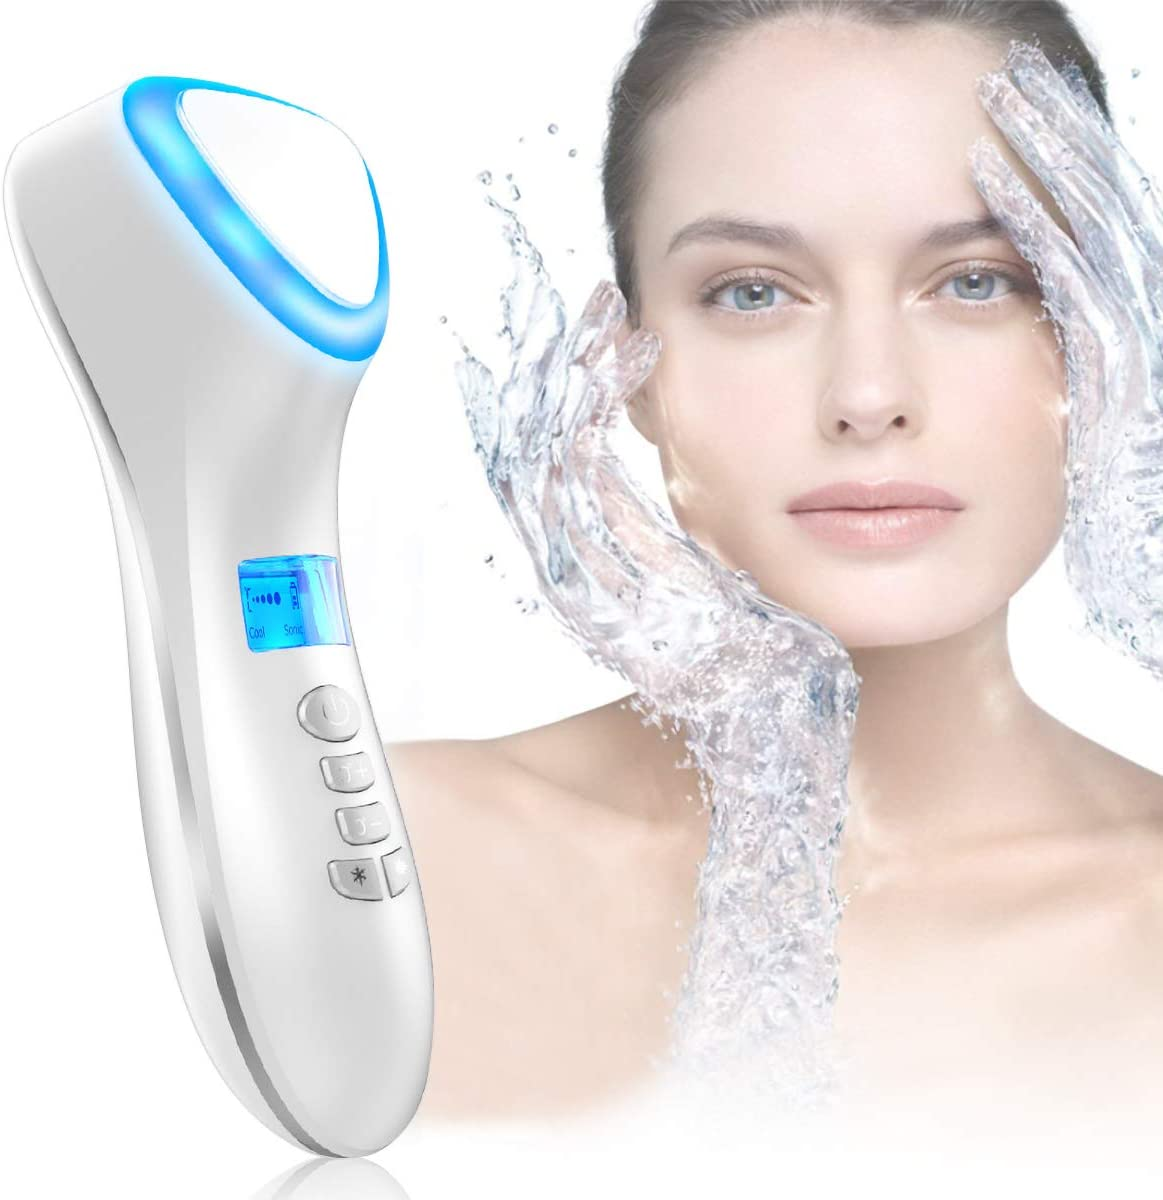 Hot And Cold Facial Massager Portable Handheld Beauty Machine Electric Rechargeable Sonic Vibration Skin Care Device For Anti Wrinkle Anti Aging Tightening Shrink Pores Amazon Co Uk Beauty